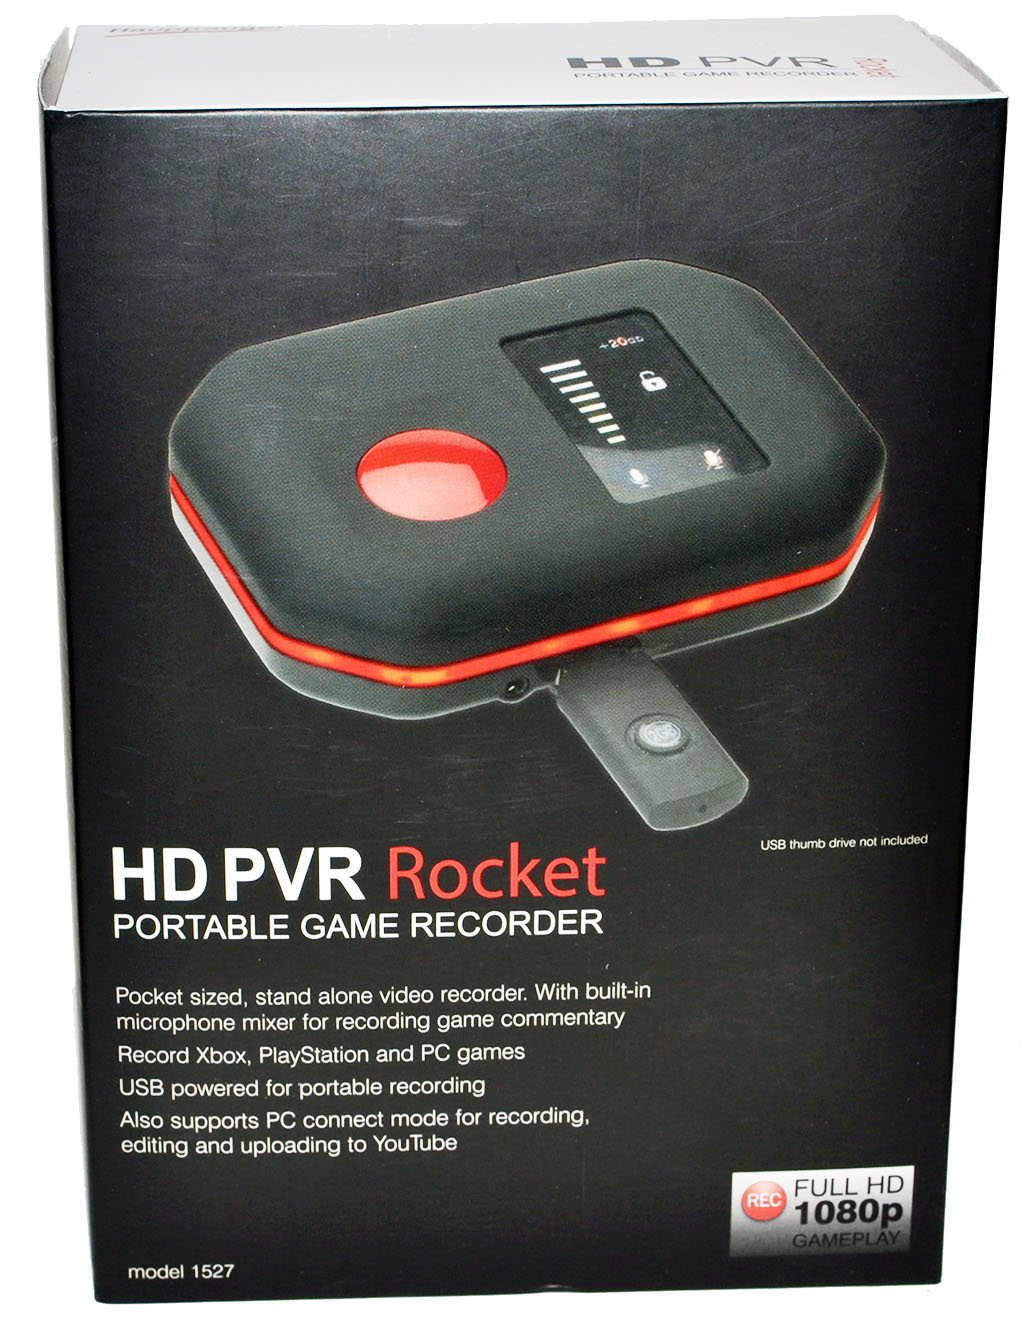 Hauppauge HD PVR Rocket Review | Page 3 of 7 | Play3r